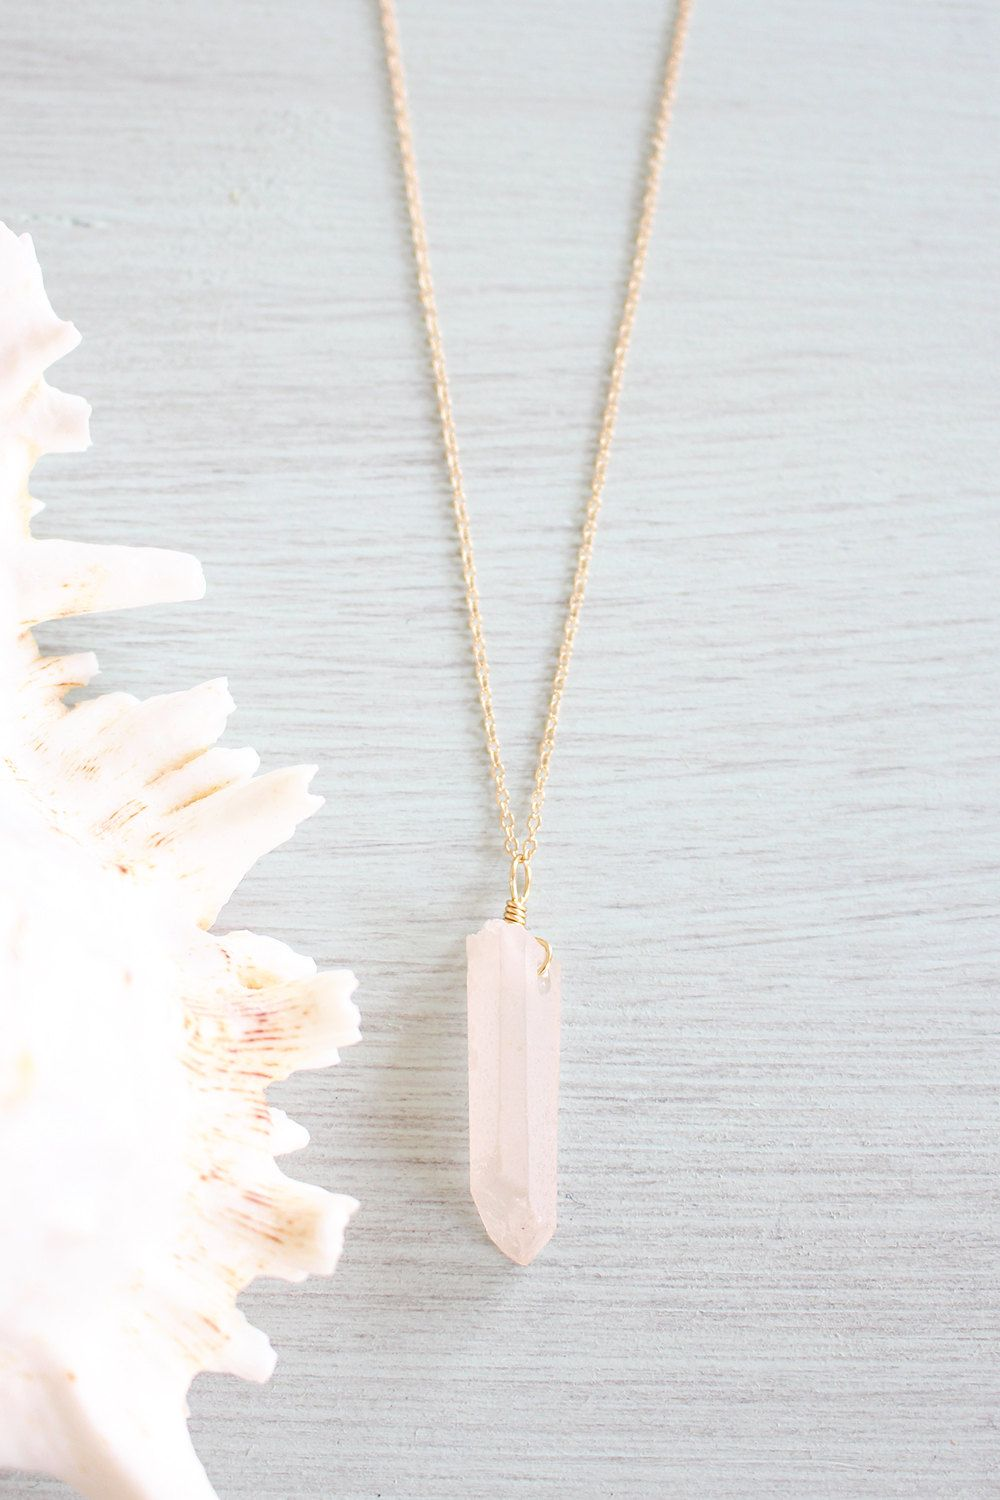 New to MoonTideJewellery on Etsy: Rose Quartz Necklace - Rose Quartz Spike Necklace - Rose Quartz Point Necklace - Pink Rose Quartz Necklace - Large Pink Crystal Necklace B1 (14.99 GBP)